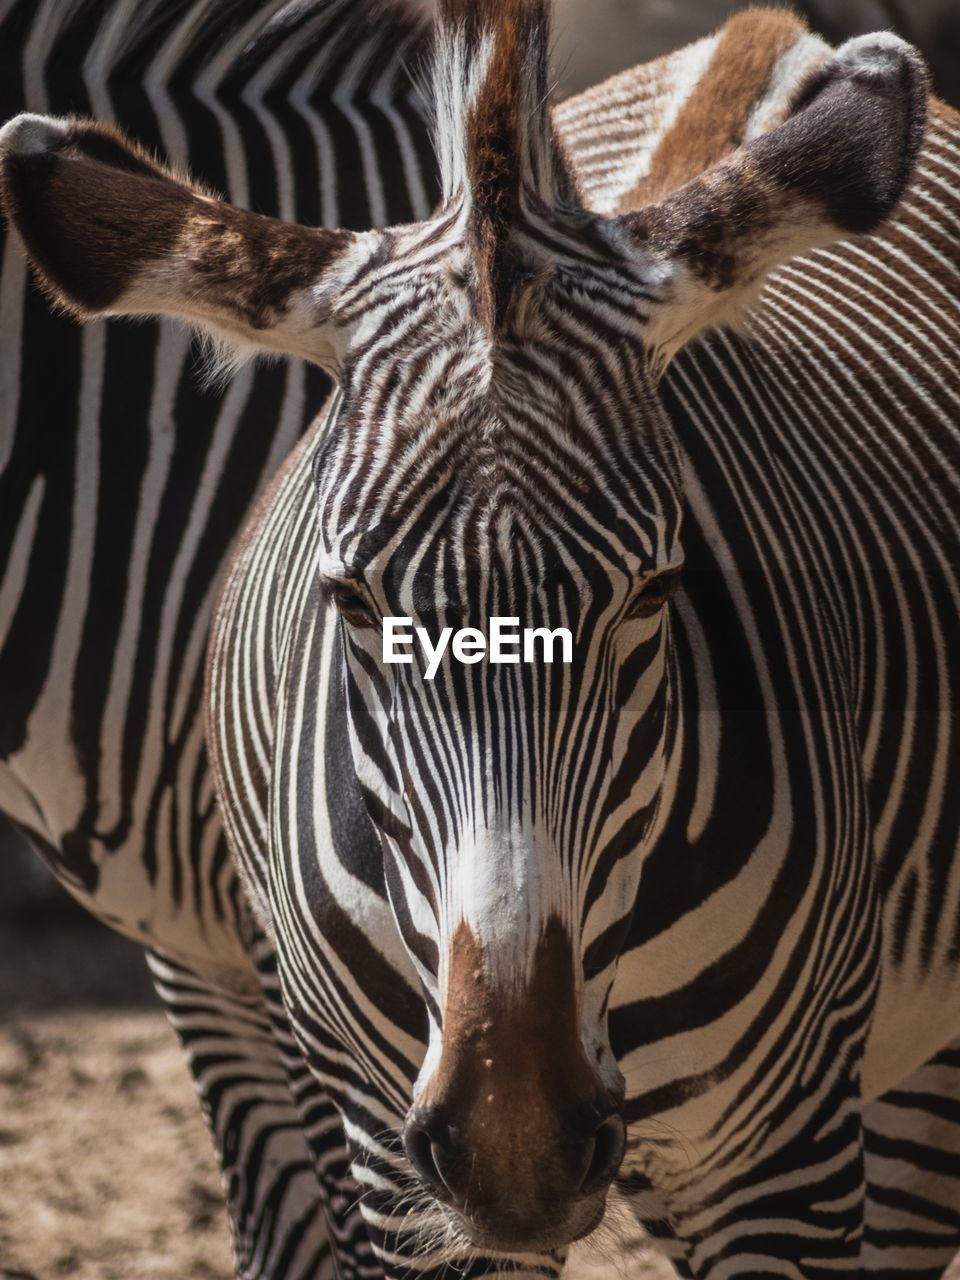 animal themes, animal, animal wildlife, striped, animals in the wild, zebra, mammal, group of animals, vertebrate, close-up, no people, safari, two animals, day, natural pattern, nature, animal body part, outdoors, animal head, herbivorous, herd